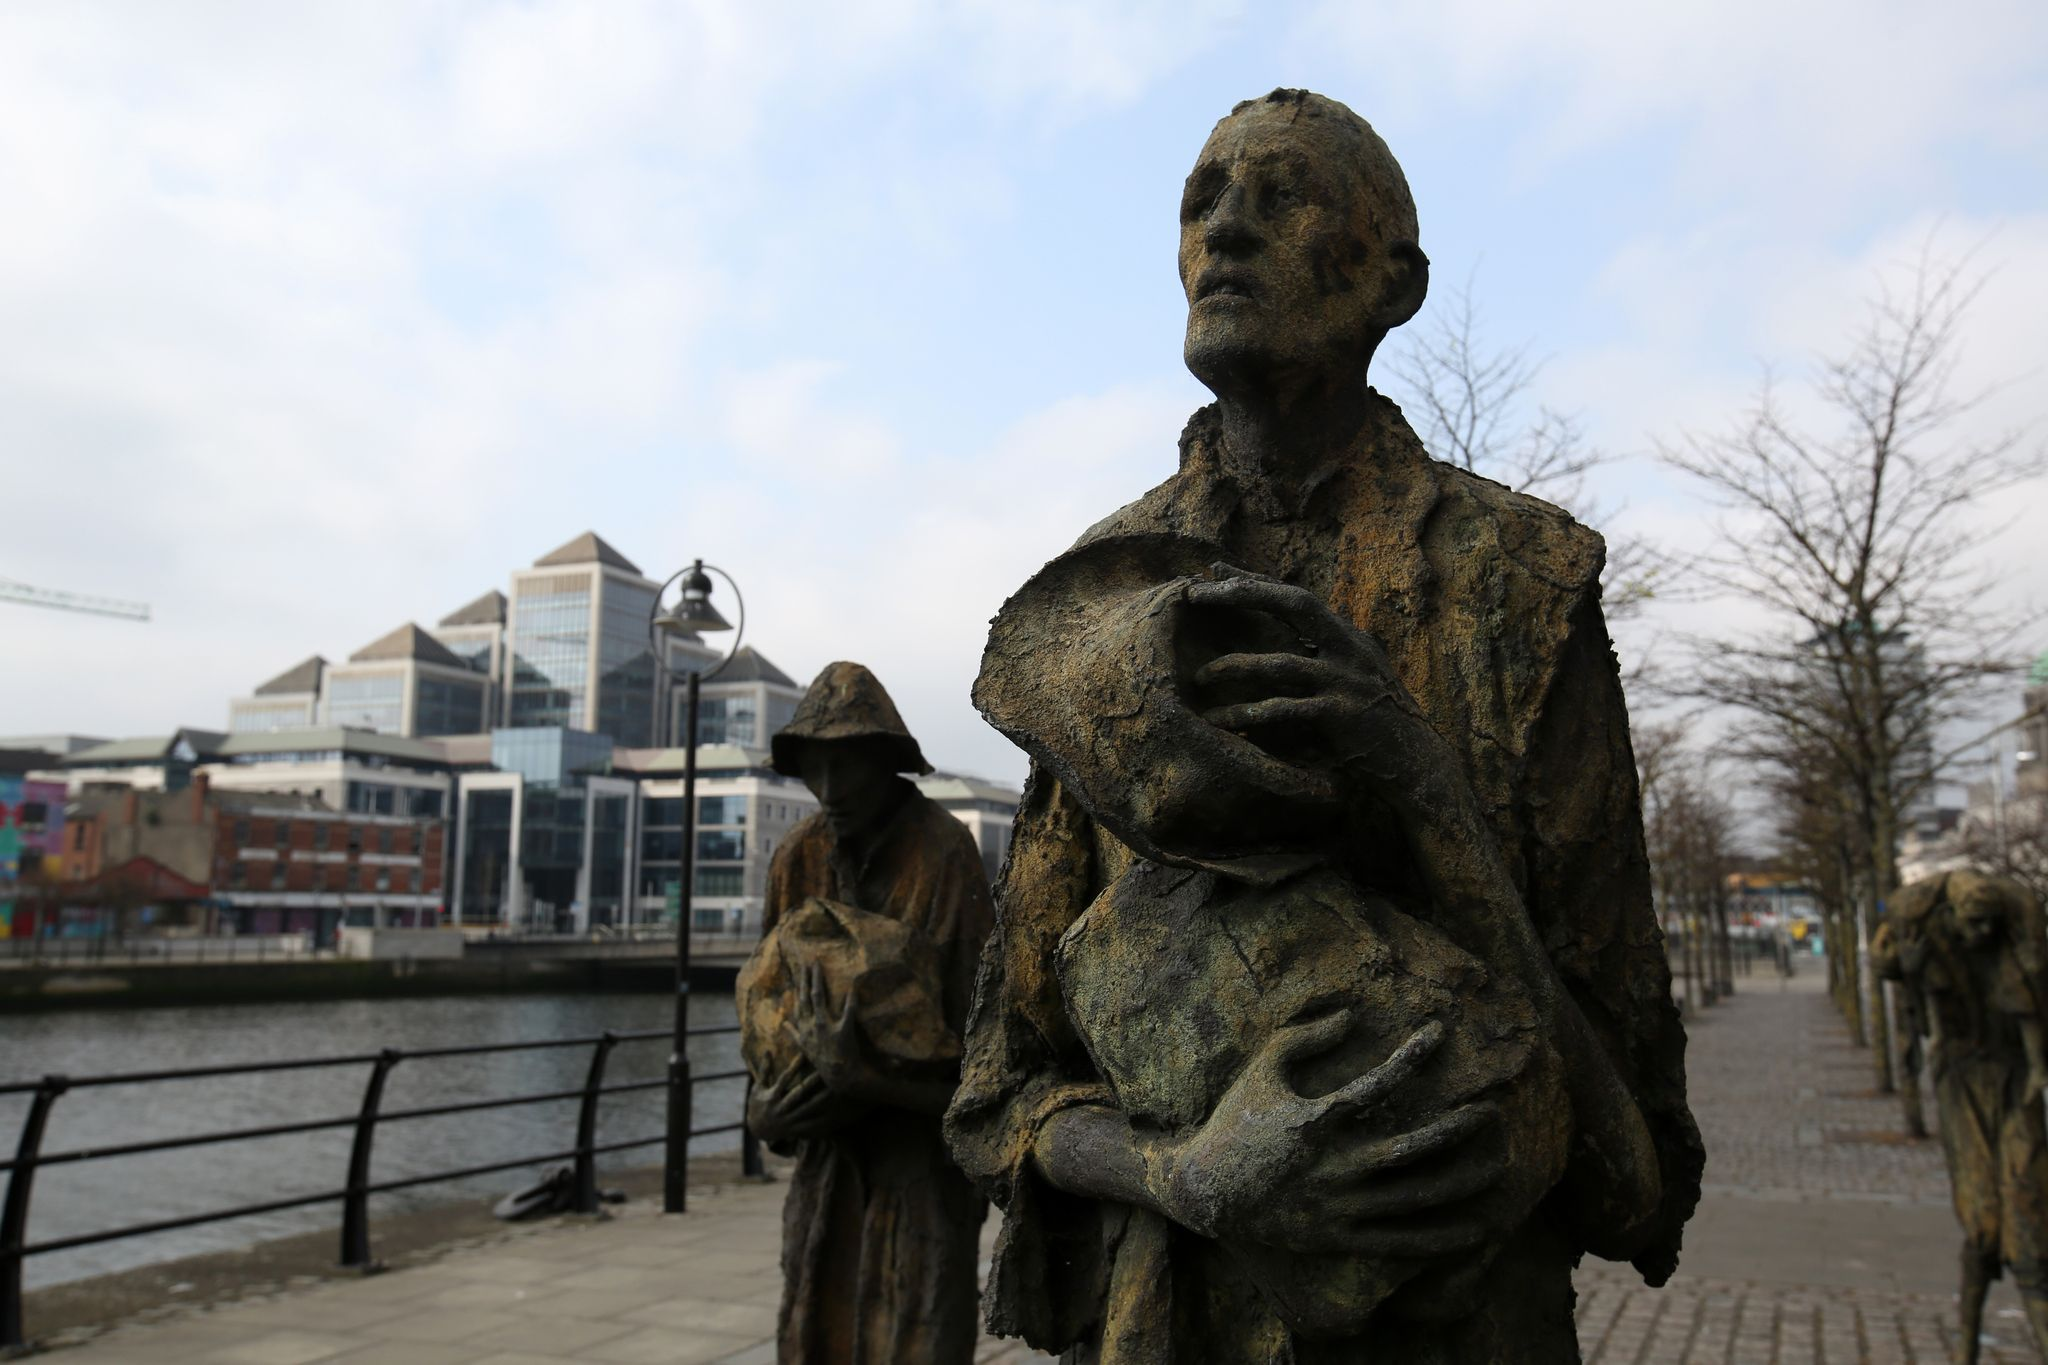 HEROES OF THE HORROR: Great Hunger victims await the coffins ships to America as depicted by sculptor Rowan Gillespie at Dublin port.